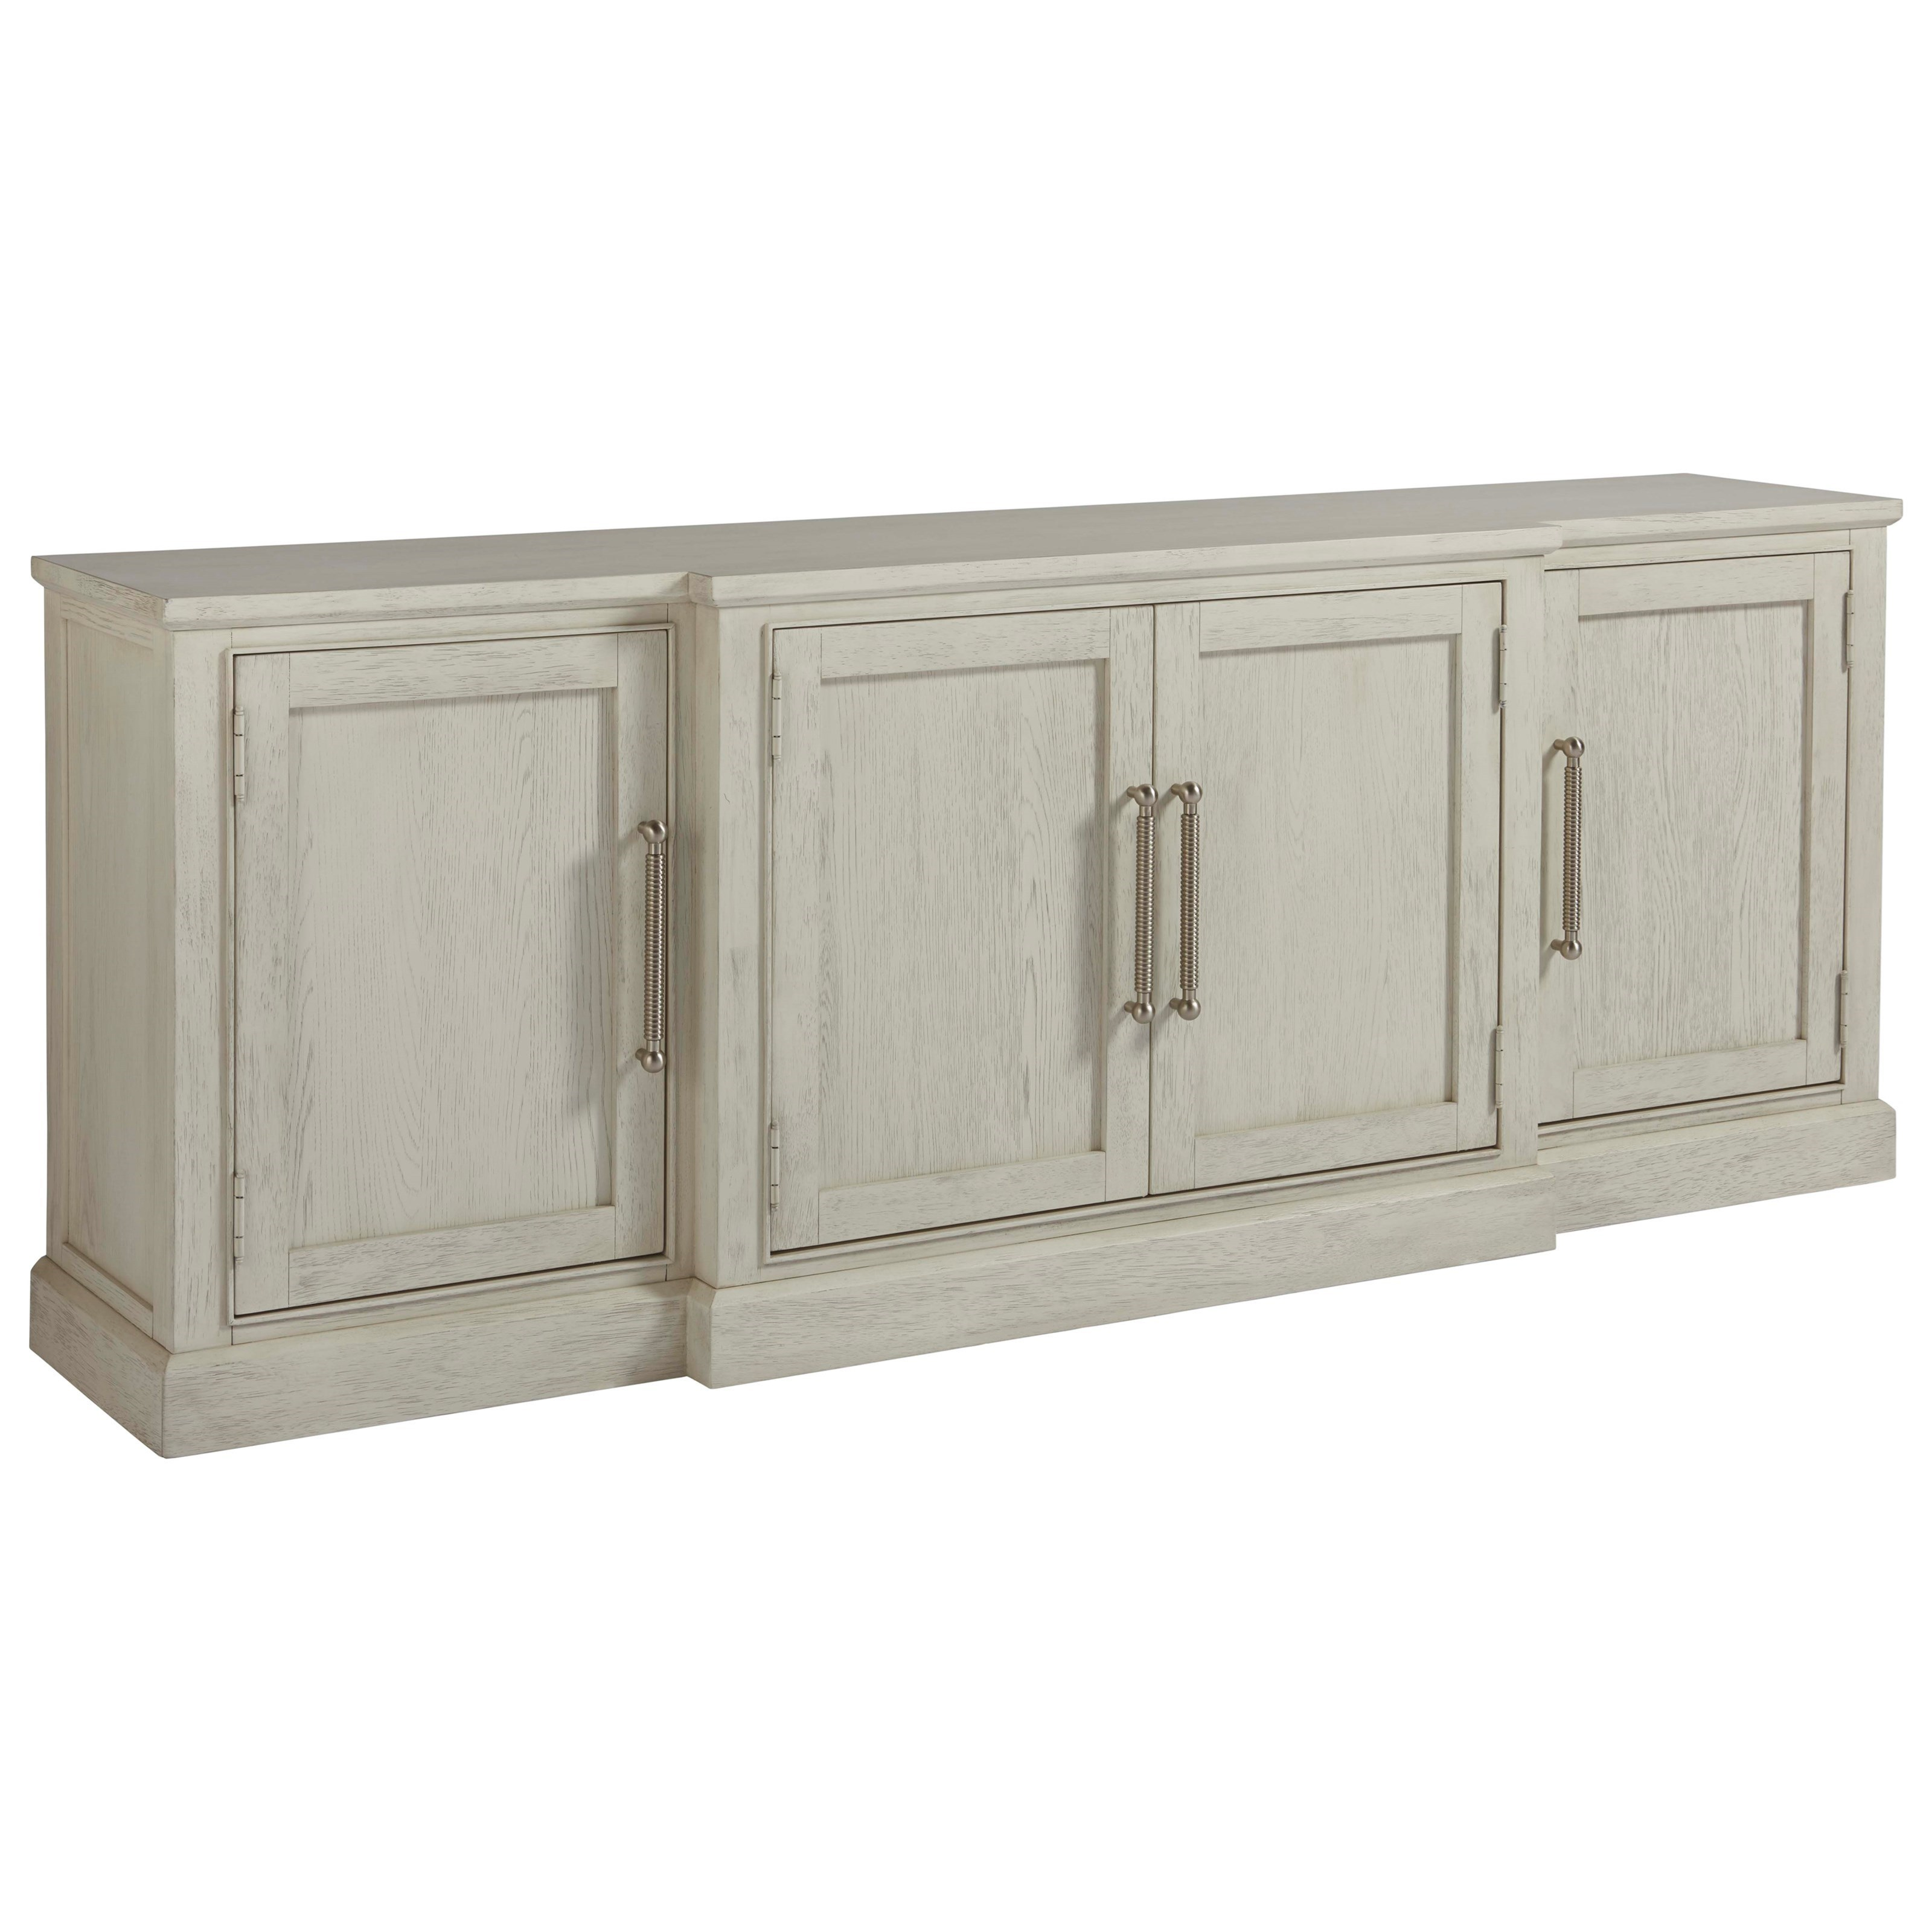 Coastal Living Home - Escape Entertainment Console by Universal at Baer's Furniture